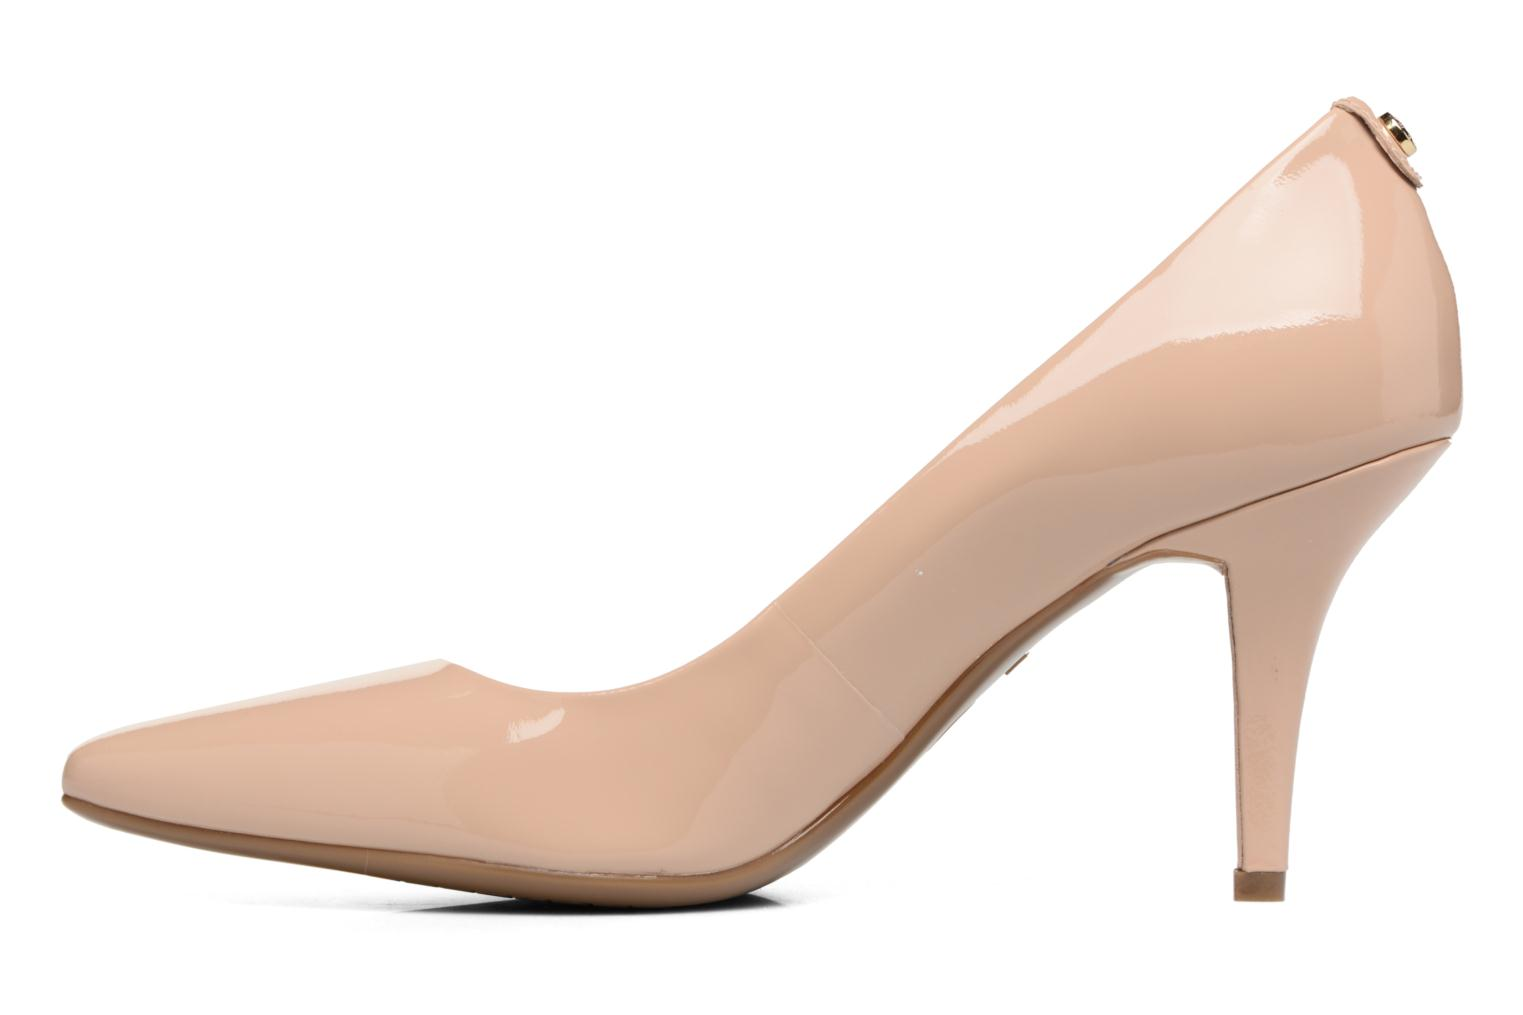 MK-Flex Mid Pump Light Blush Patent